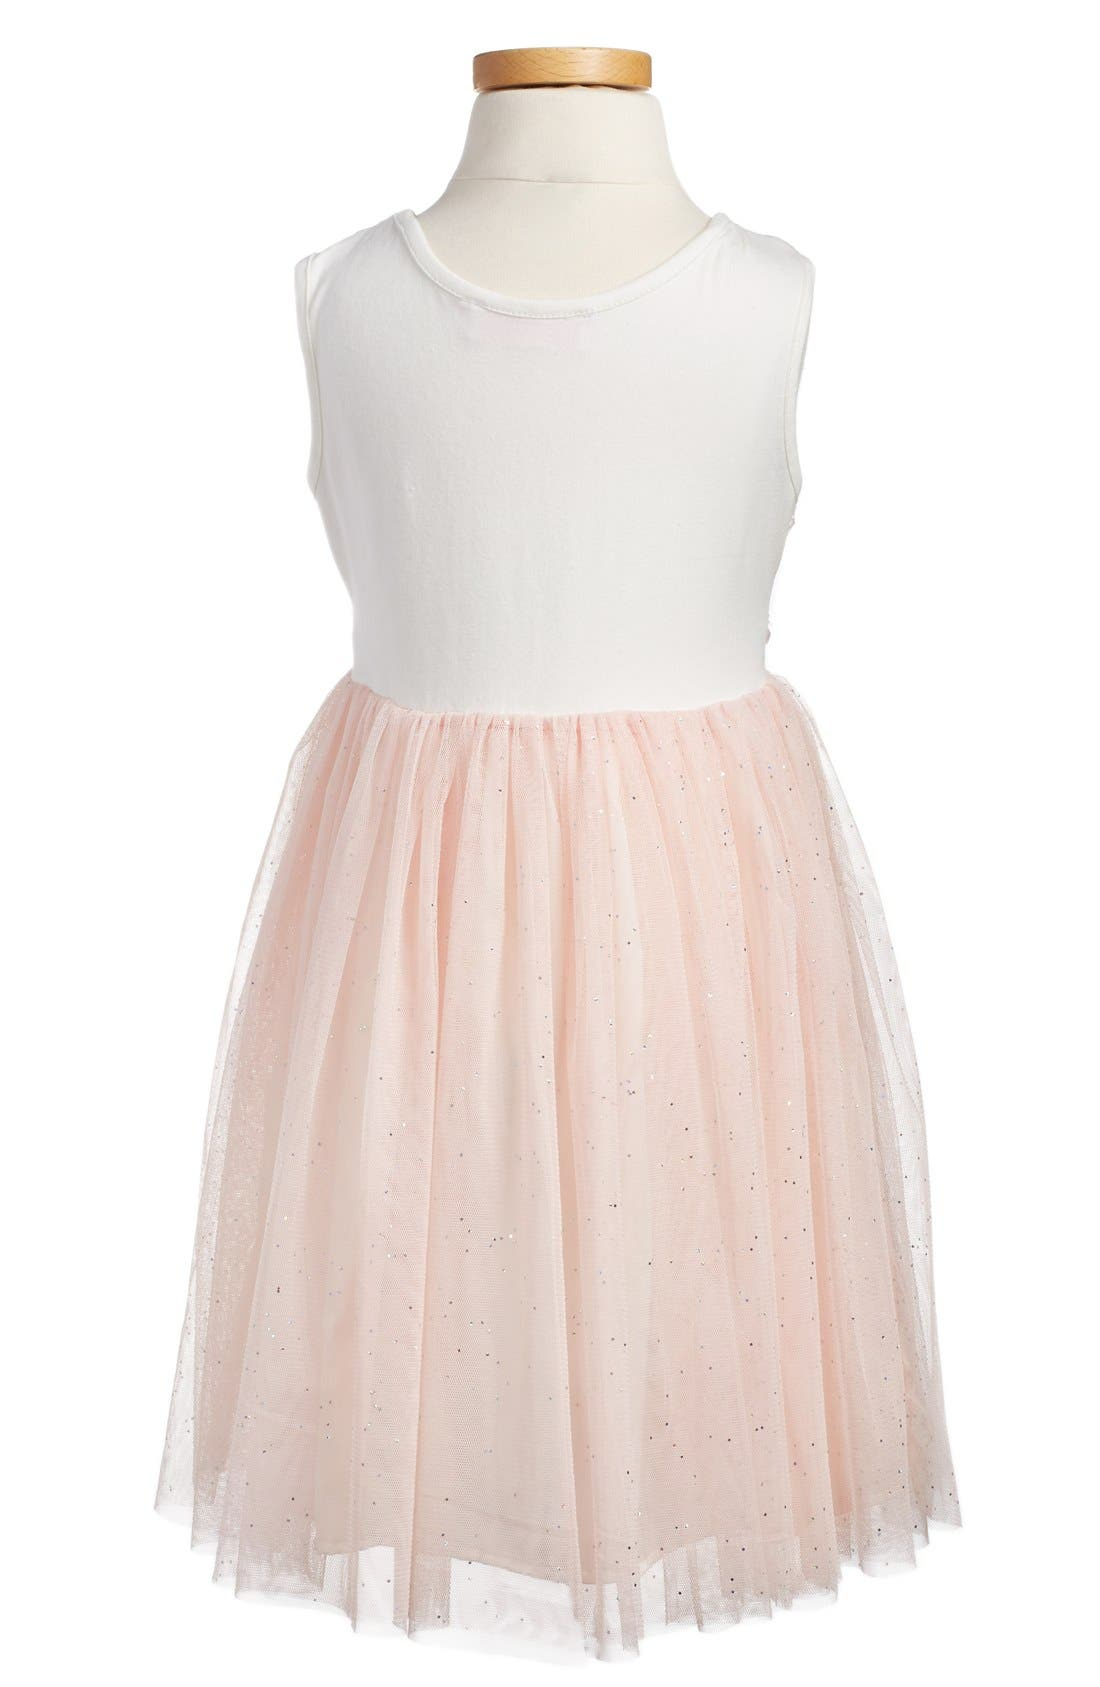 POPATU, Embroidered Tulle Dress, Alternate thumbnail 2, color, PEACH